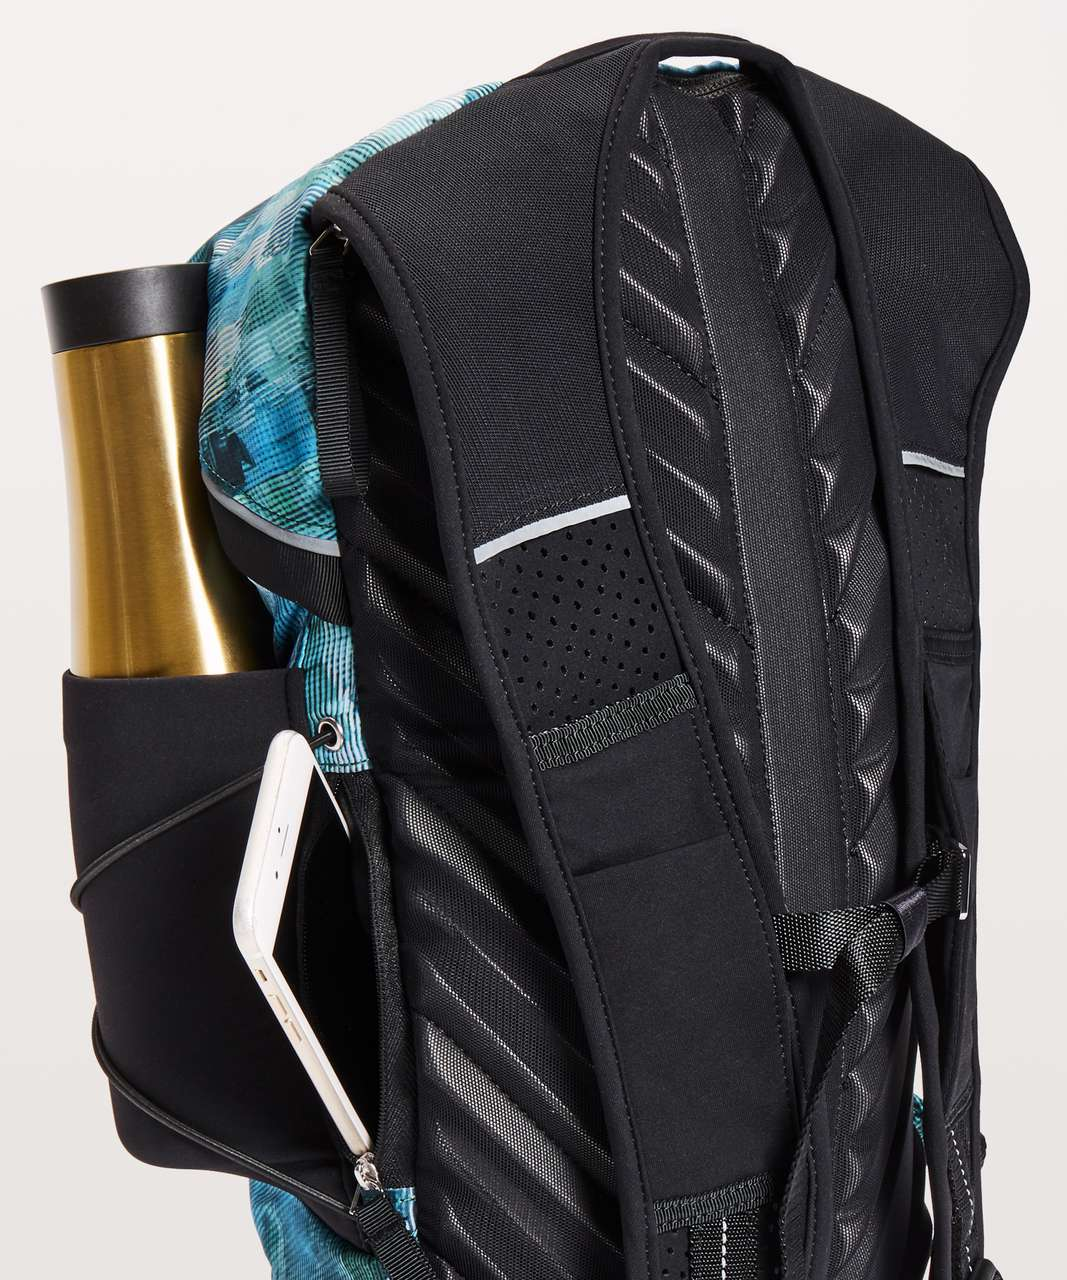 Lululemon Run All Day Backpack II *13L - Sun Dazed Multi Blue / Black